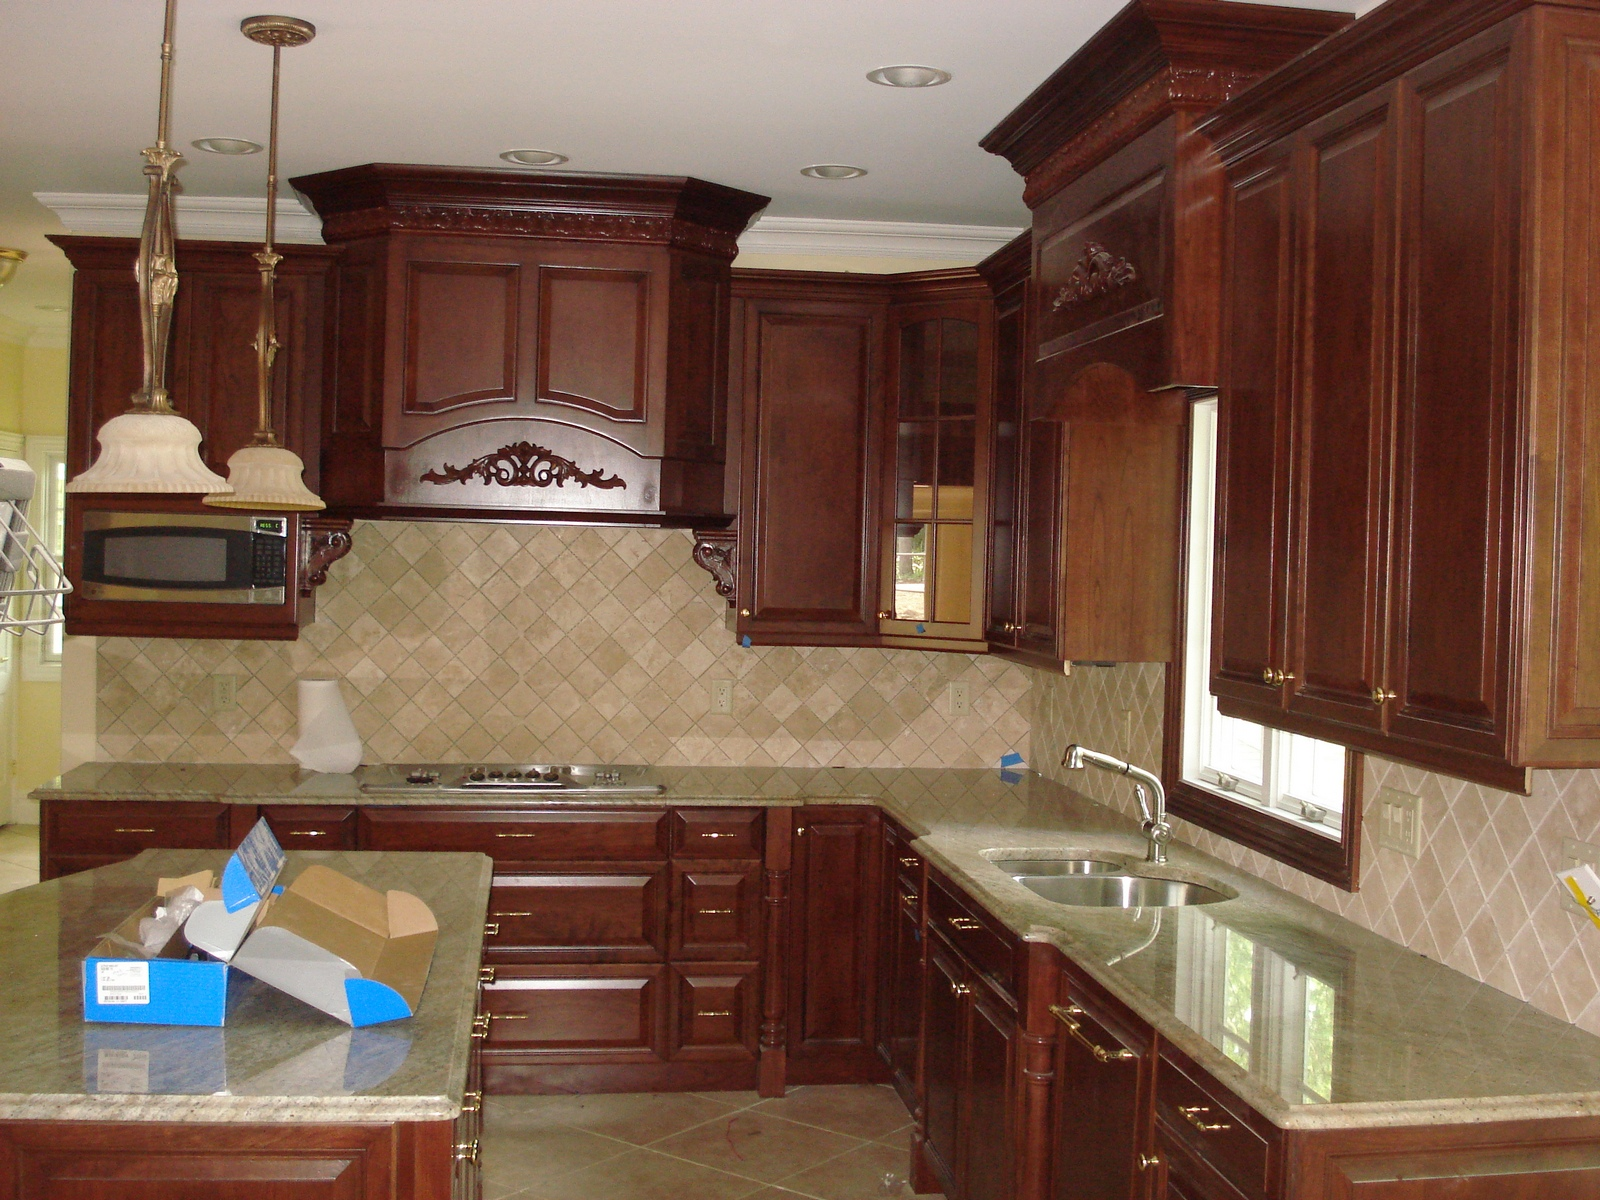 Kitchen Cabintes By Crown Molding NJ (13) Kitchen Cabinets KC6